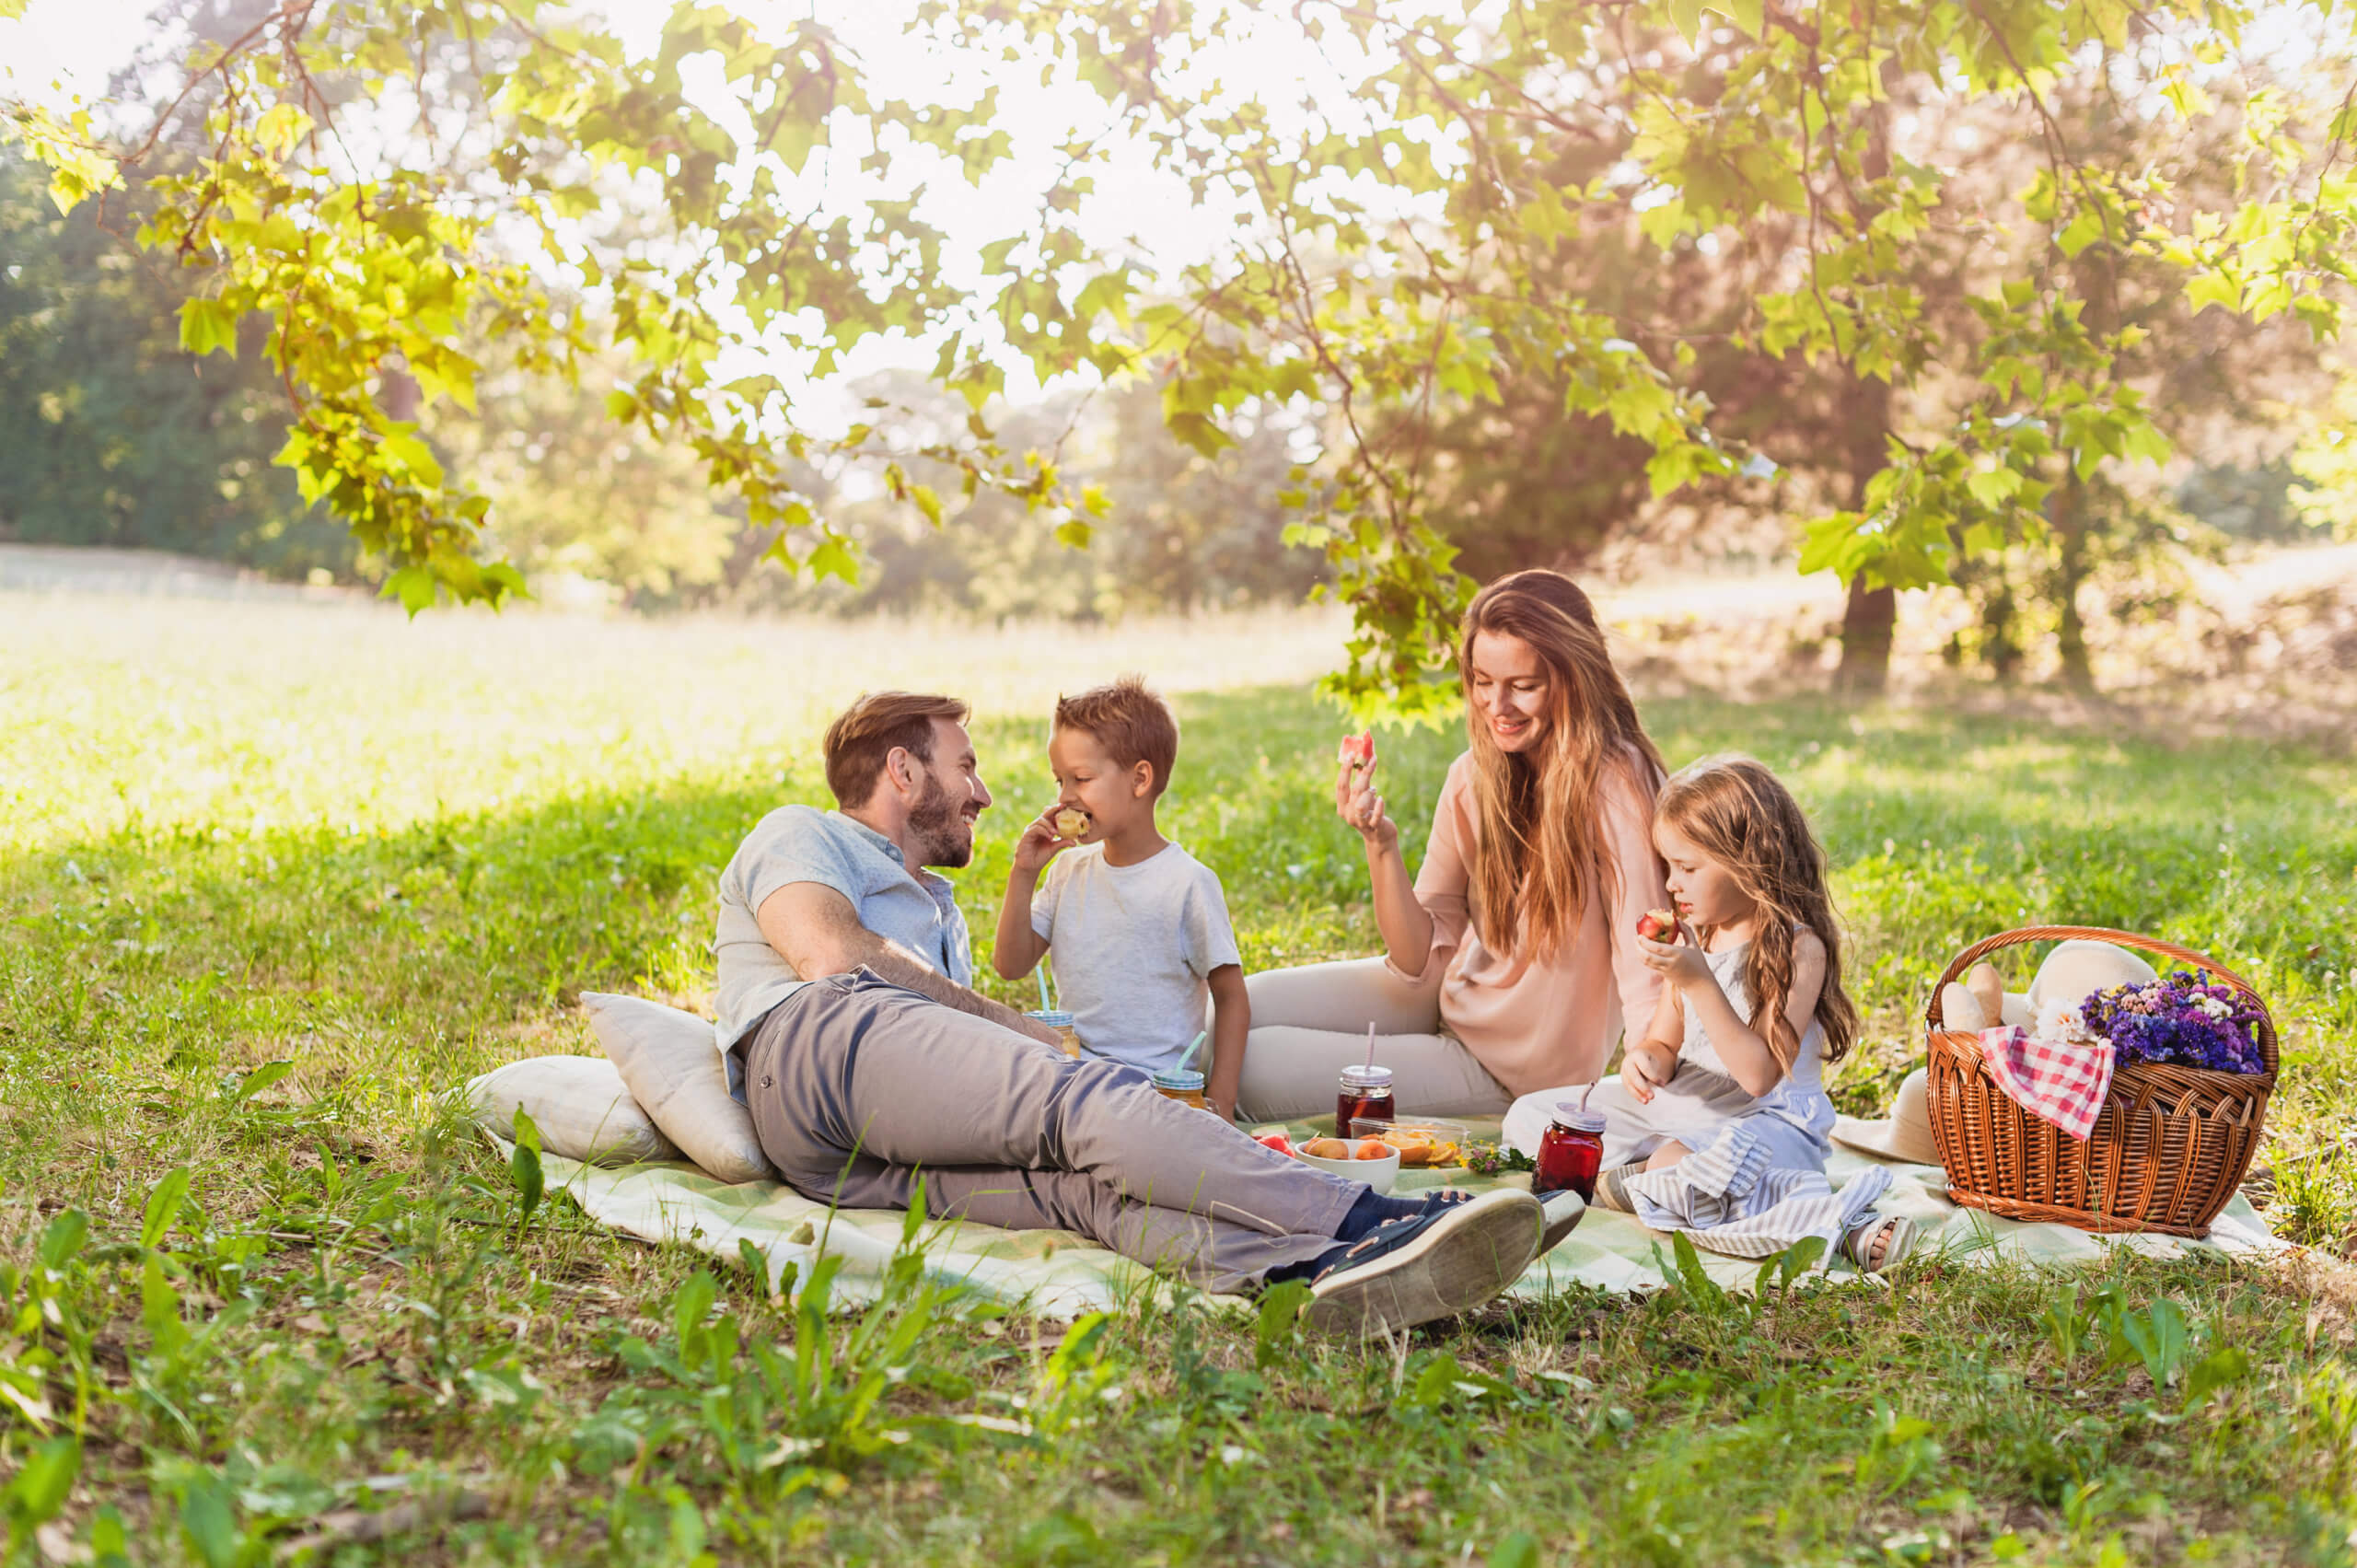 5 Things to Consider When Planning a Picnic